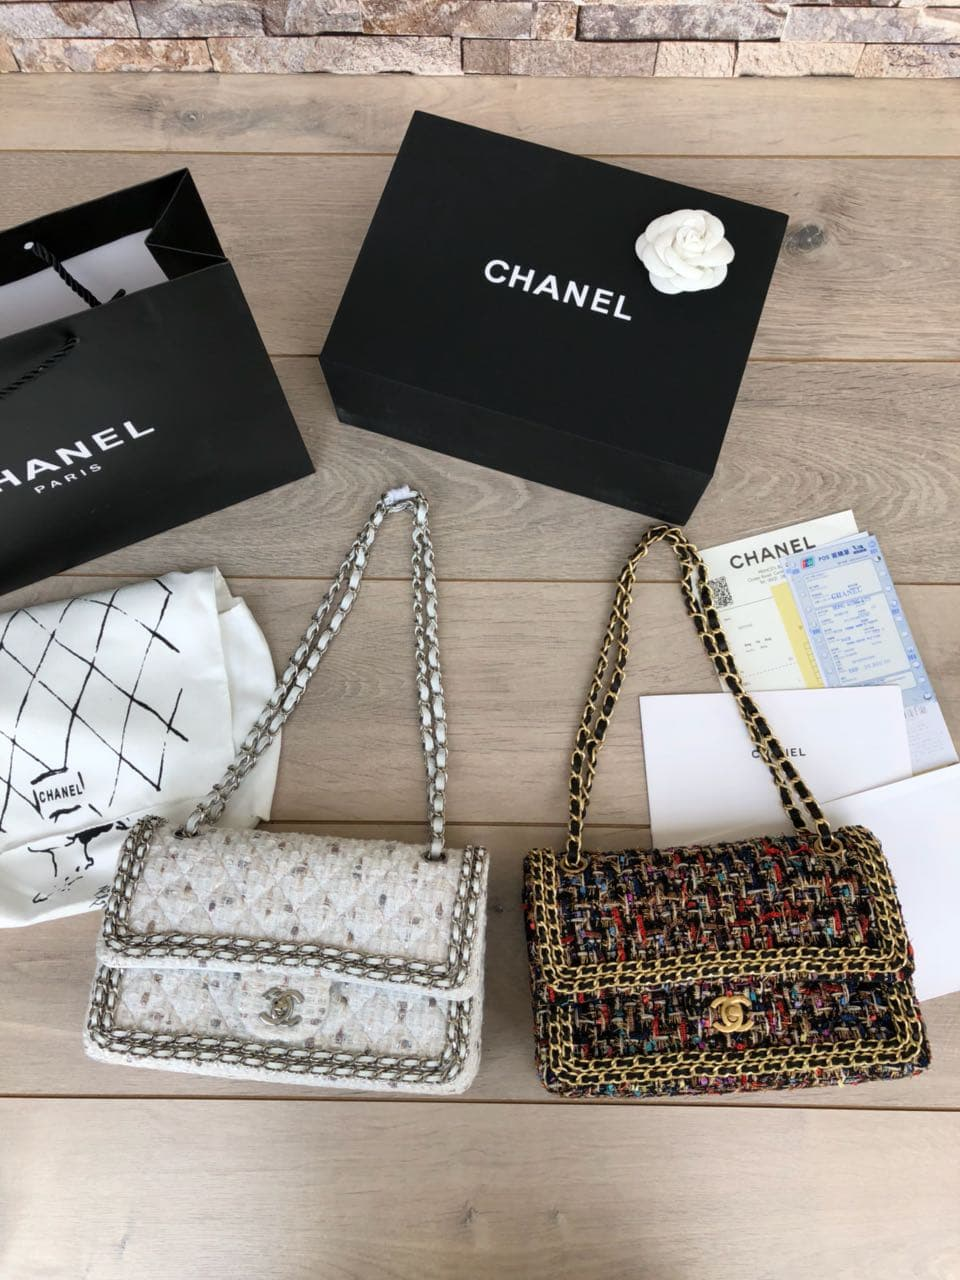 39bacd0935cbdd Jual Tas Chanel Classic 25 Tweed Double Flap Mirror A1112-1 - Putih -  Branded-Outlet   Tokopedia